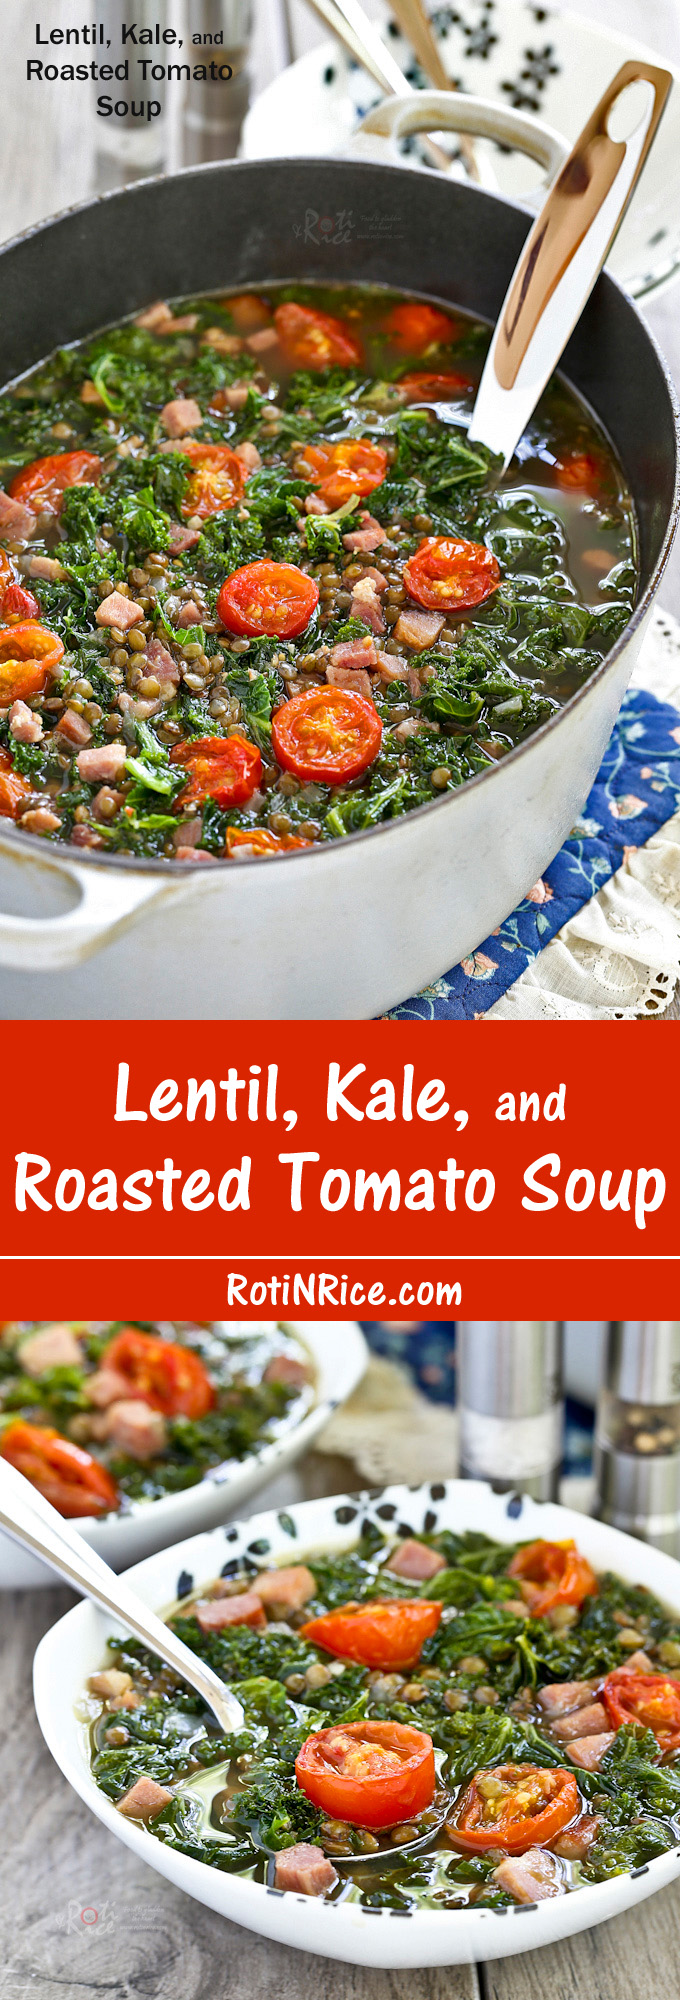 This Lentil, Kale, and Roasted Tomato Soup is super tasty and nutritious. Serve it as is or with crusty bread for a totally satisfying meal. | RotiNRice.com